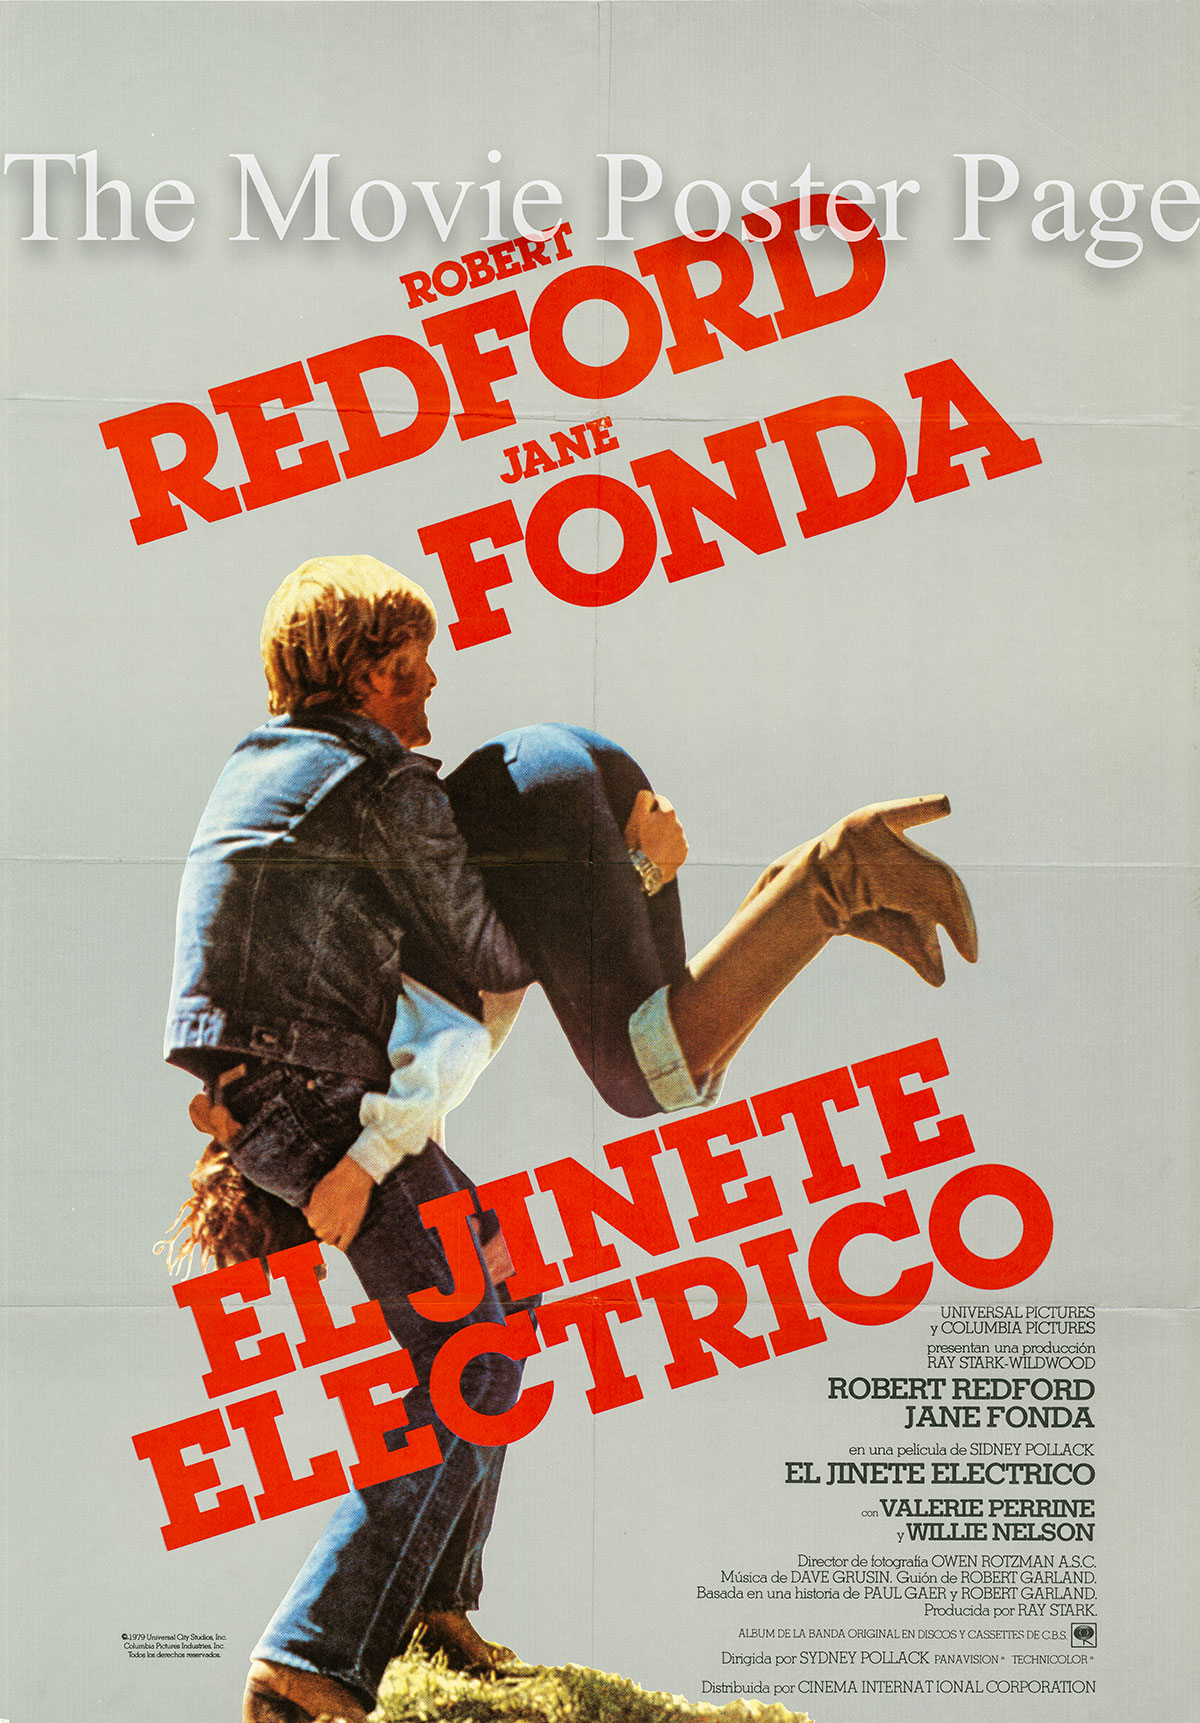 Pictured is a Spanish one-sheet poster for the 1979 Sydney Pollack film Electric Horseman starring Robert Redford as Sonny Steele.